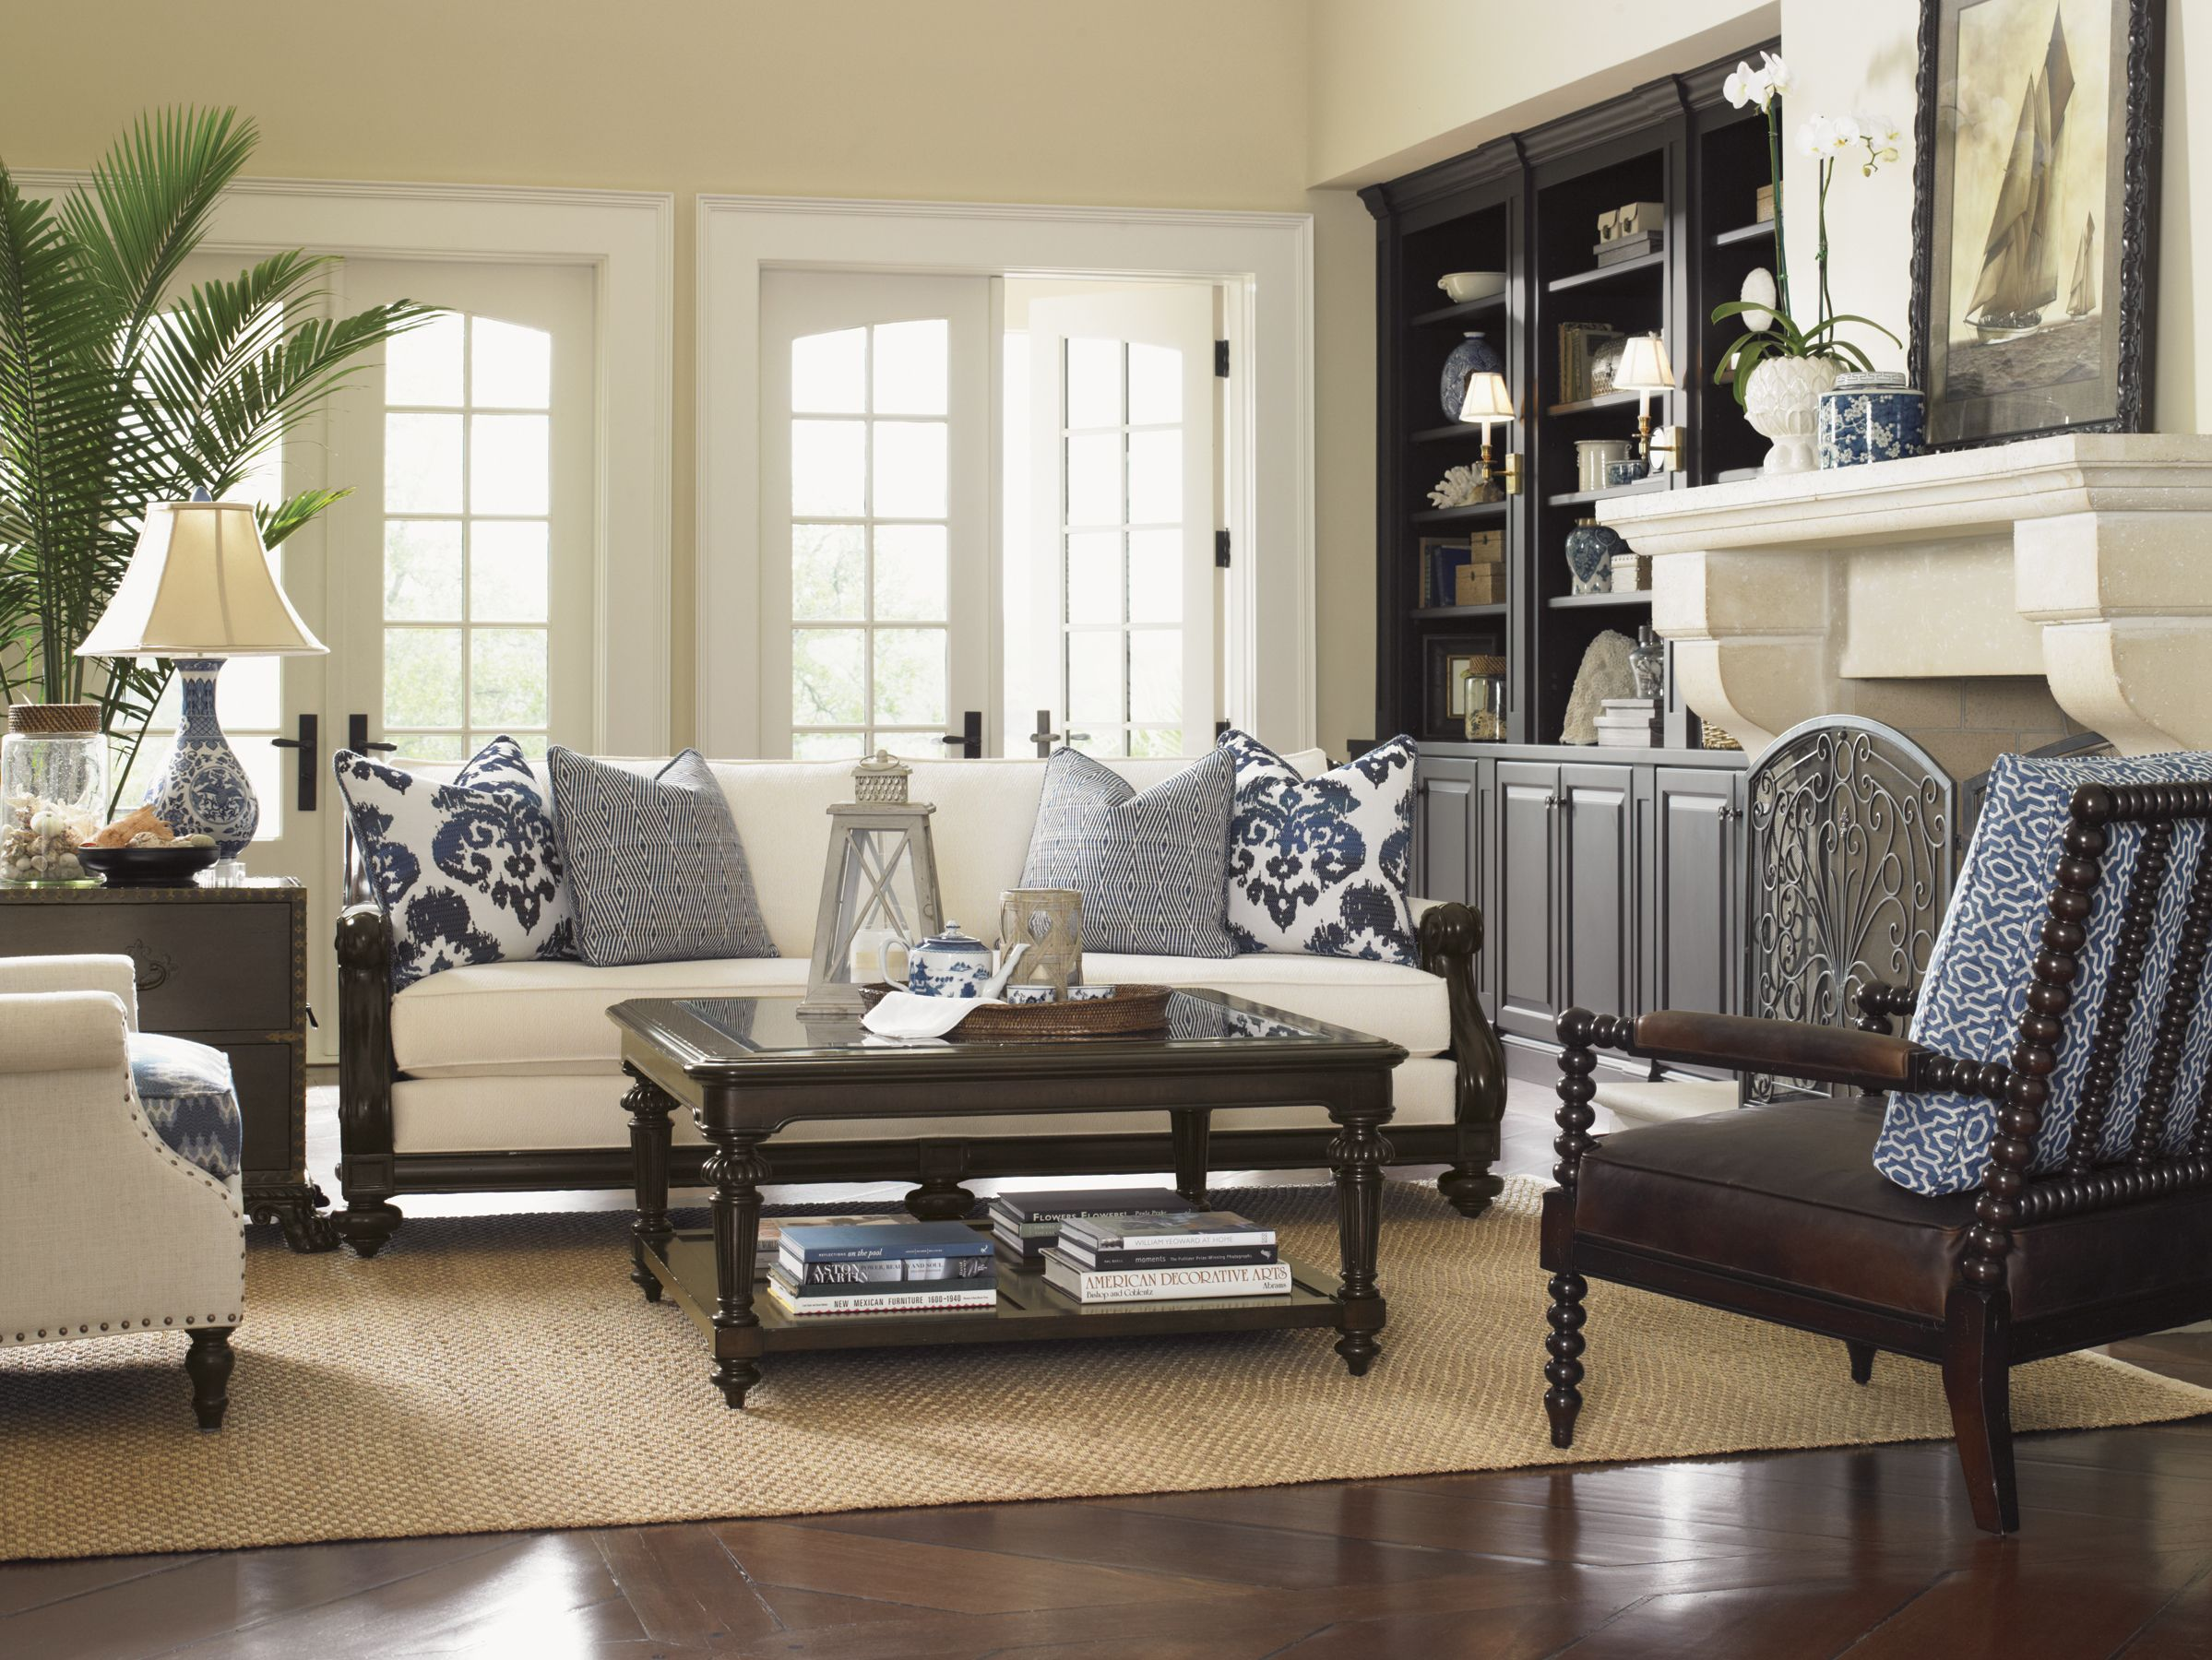 Tommy Bahama Home Island Traditions Berkshire Sofa And Sheffield Table Take A Seat